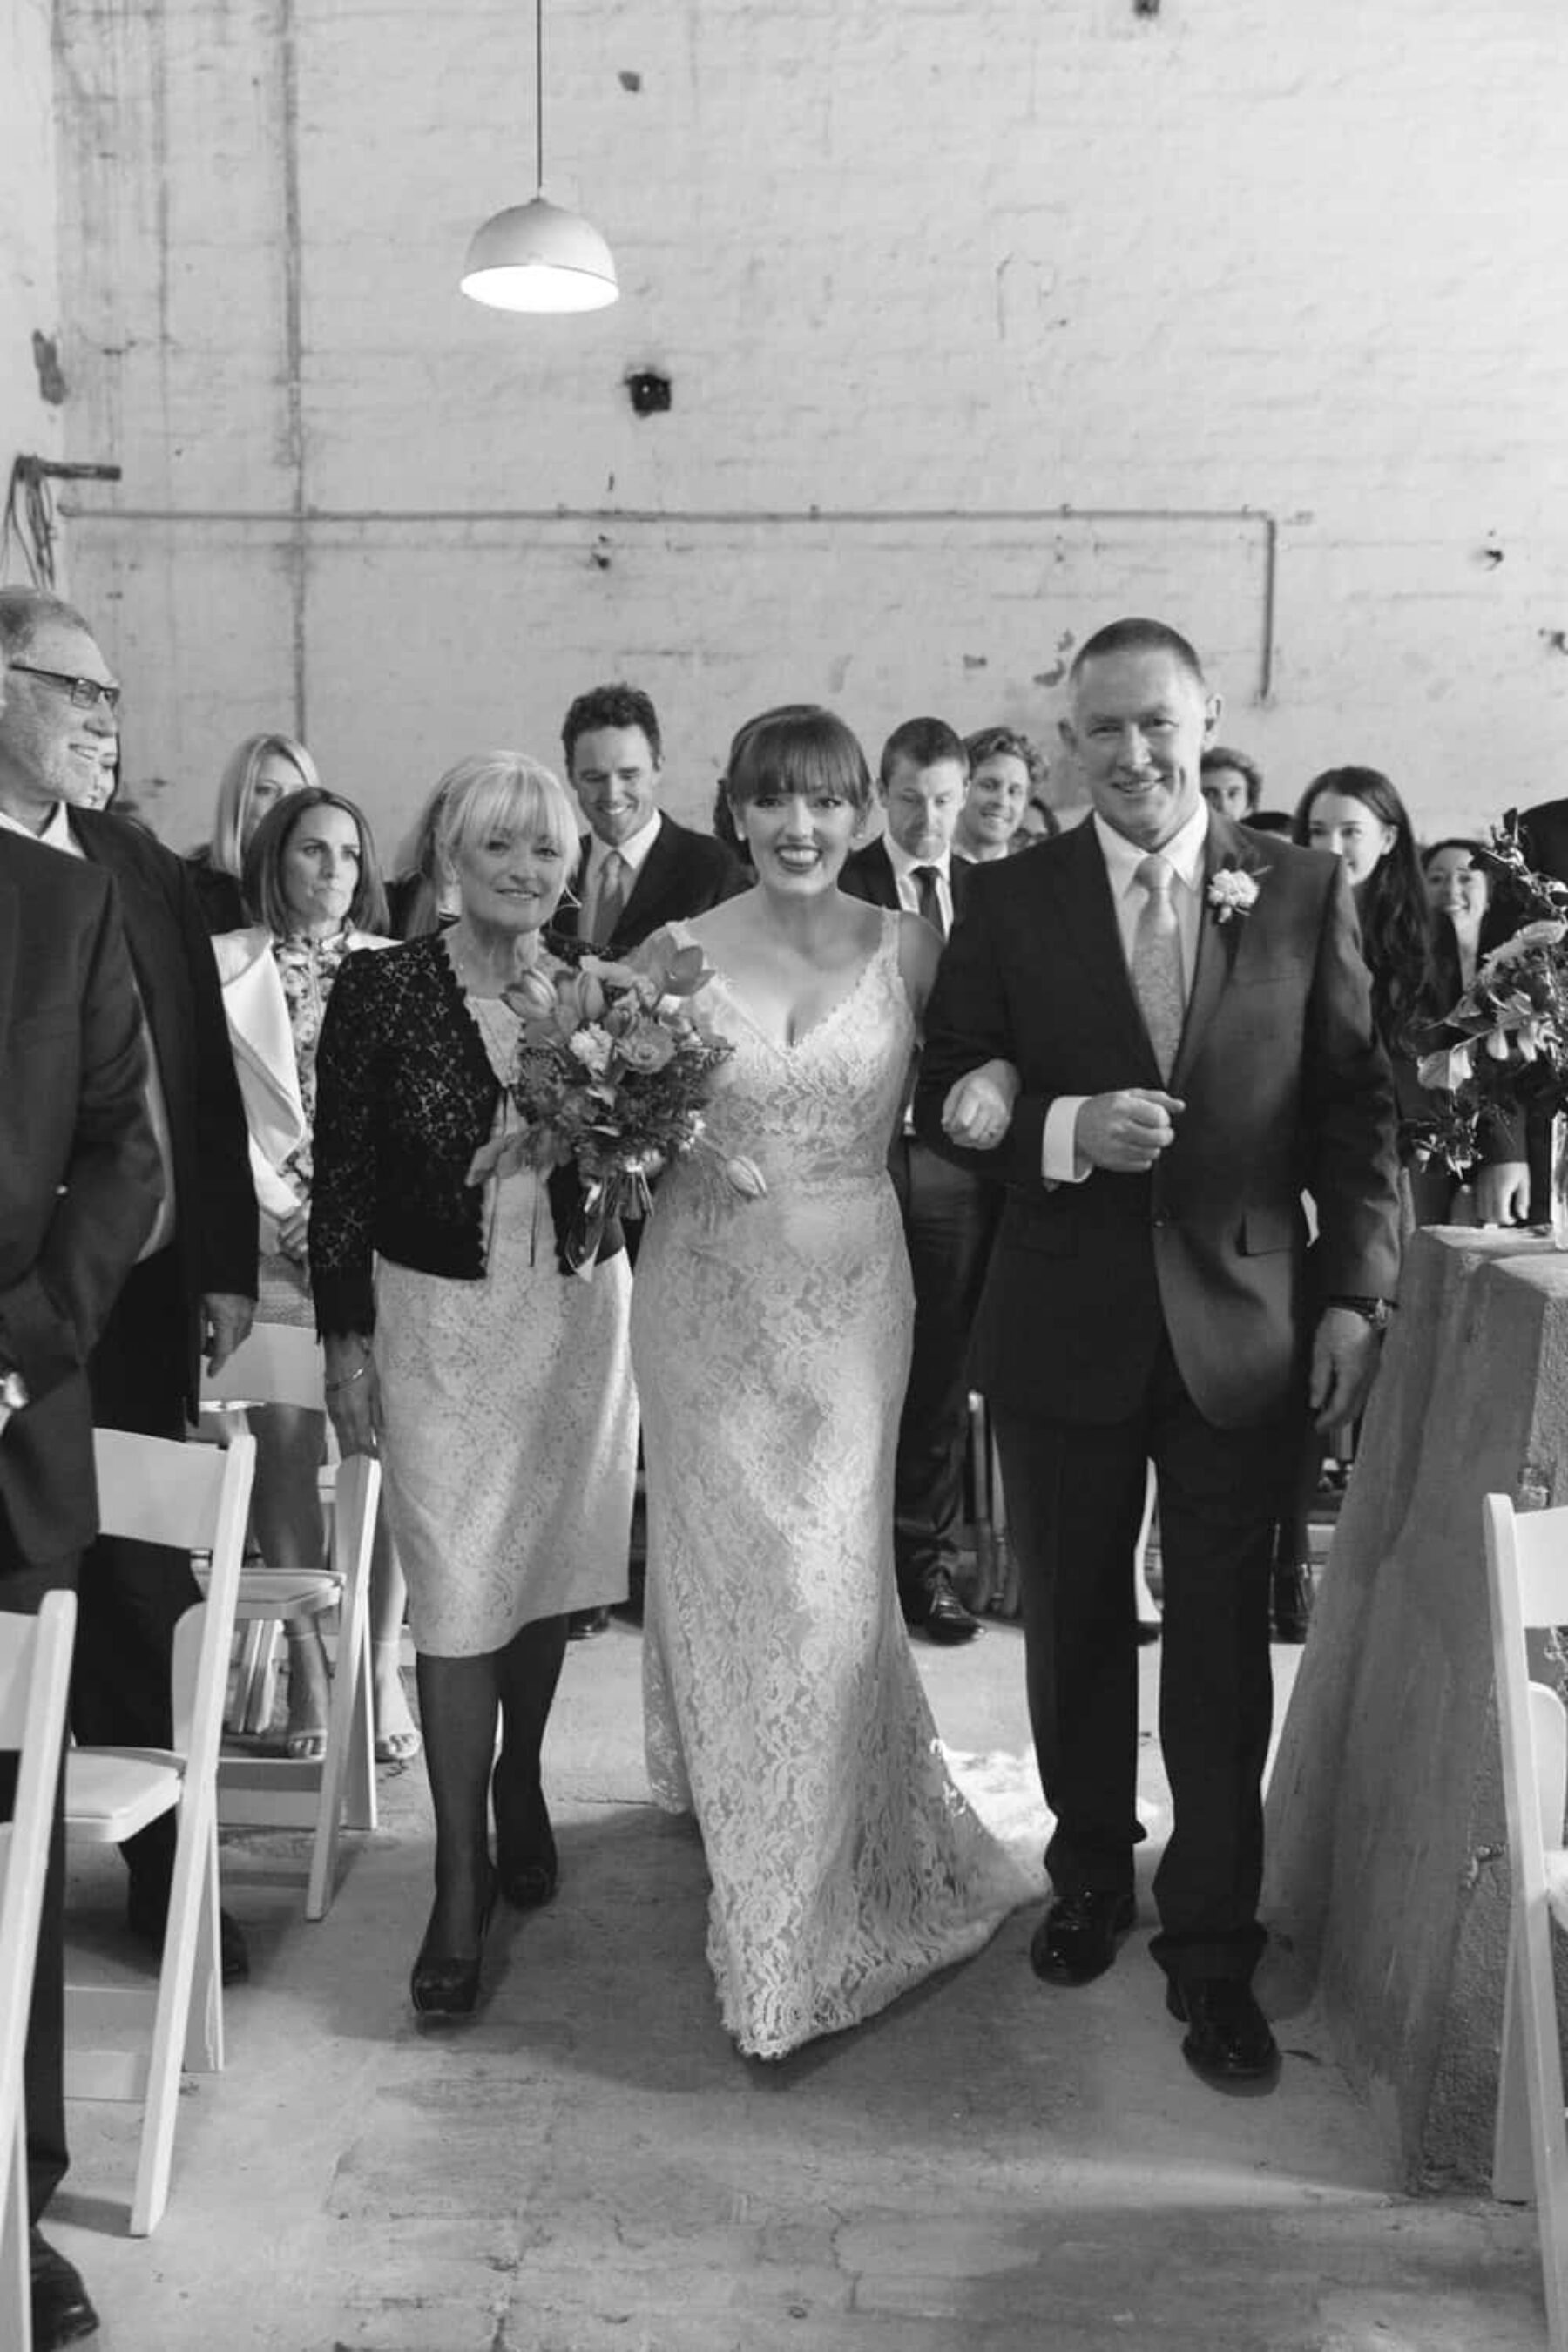 Euroa Butter Factory wedding / Photography by Bri Hammond